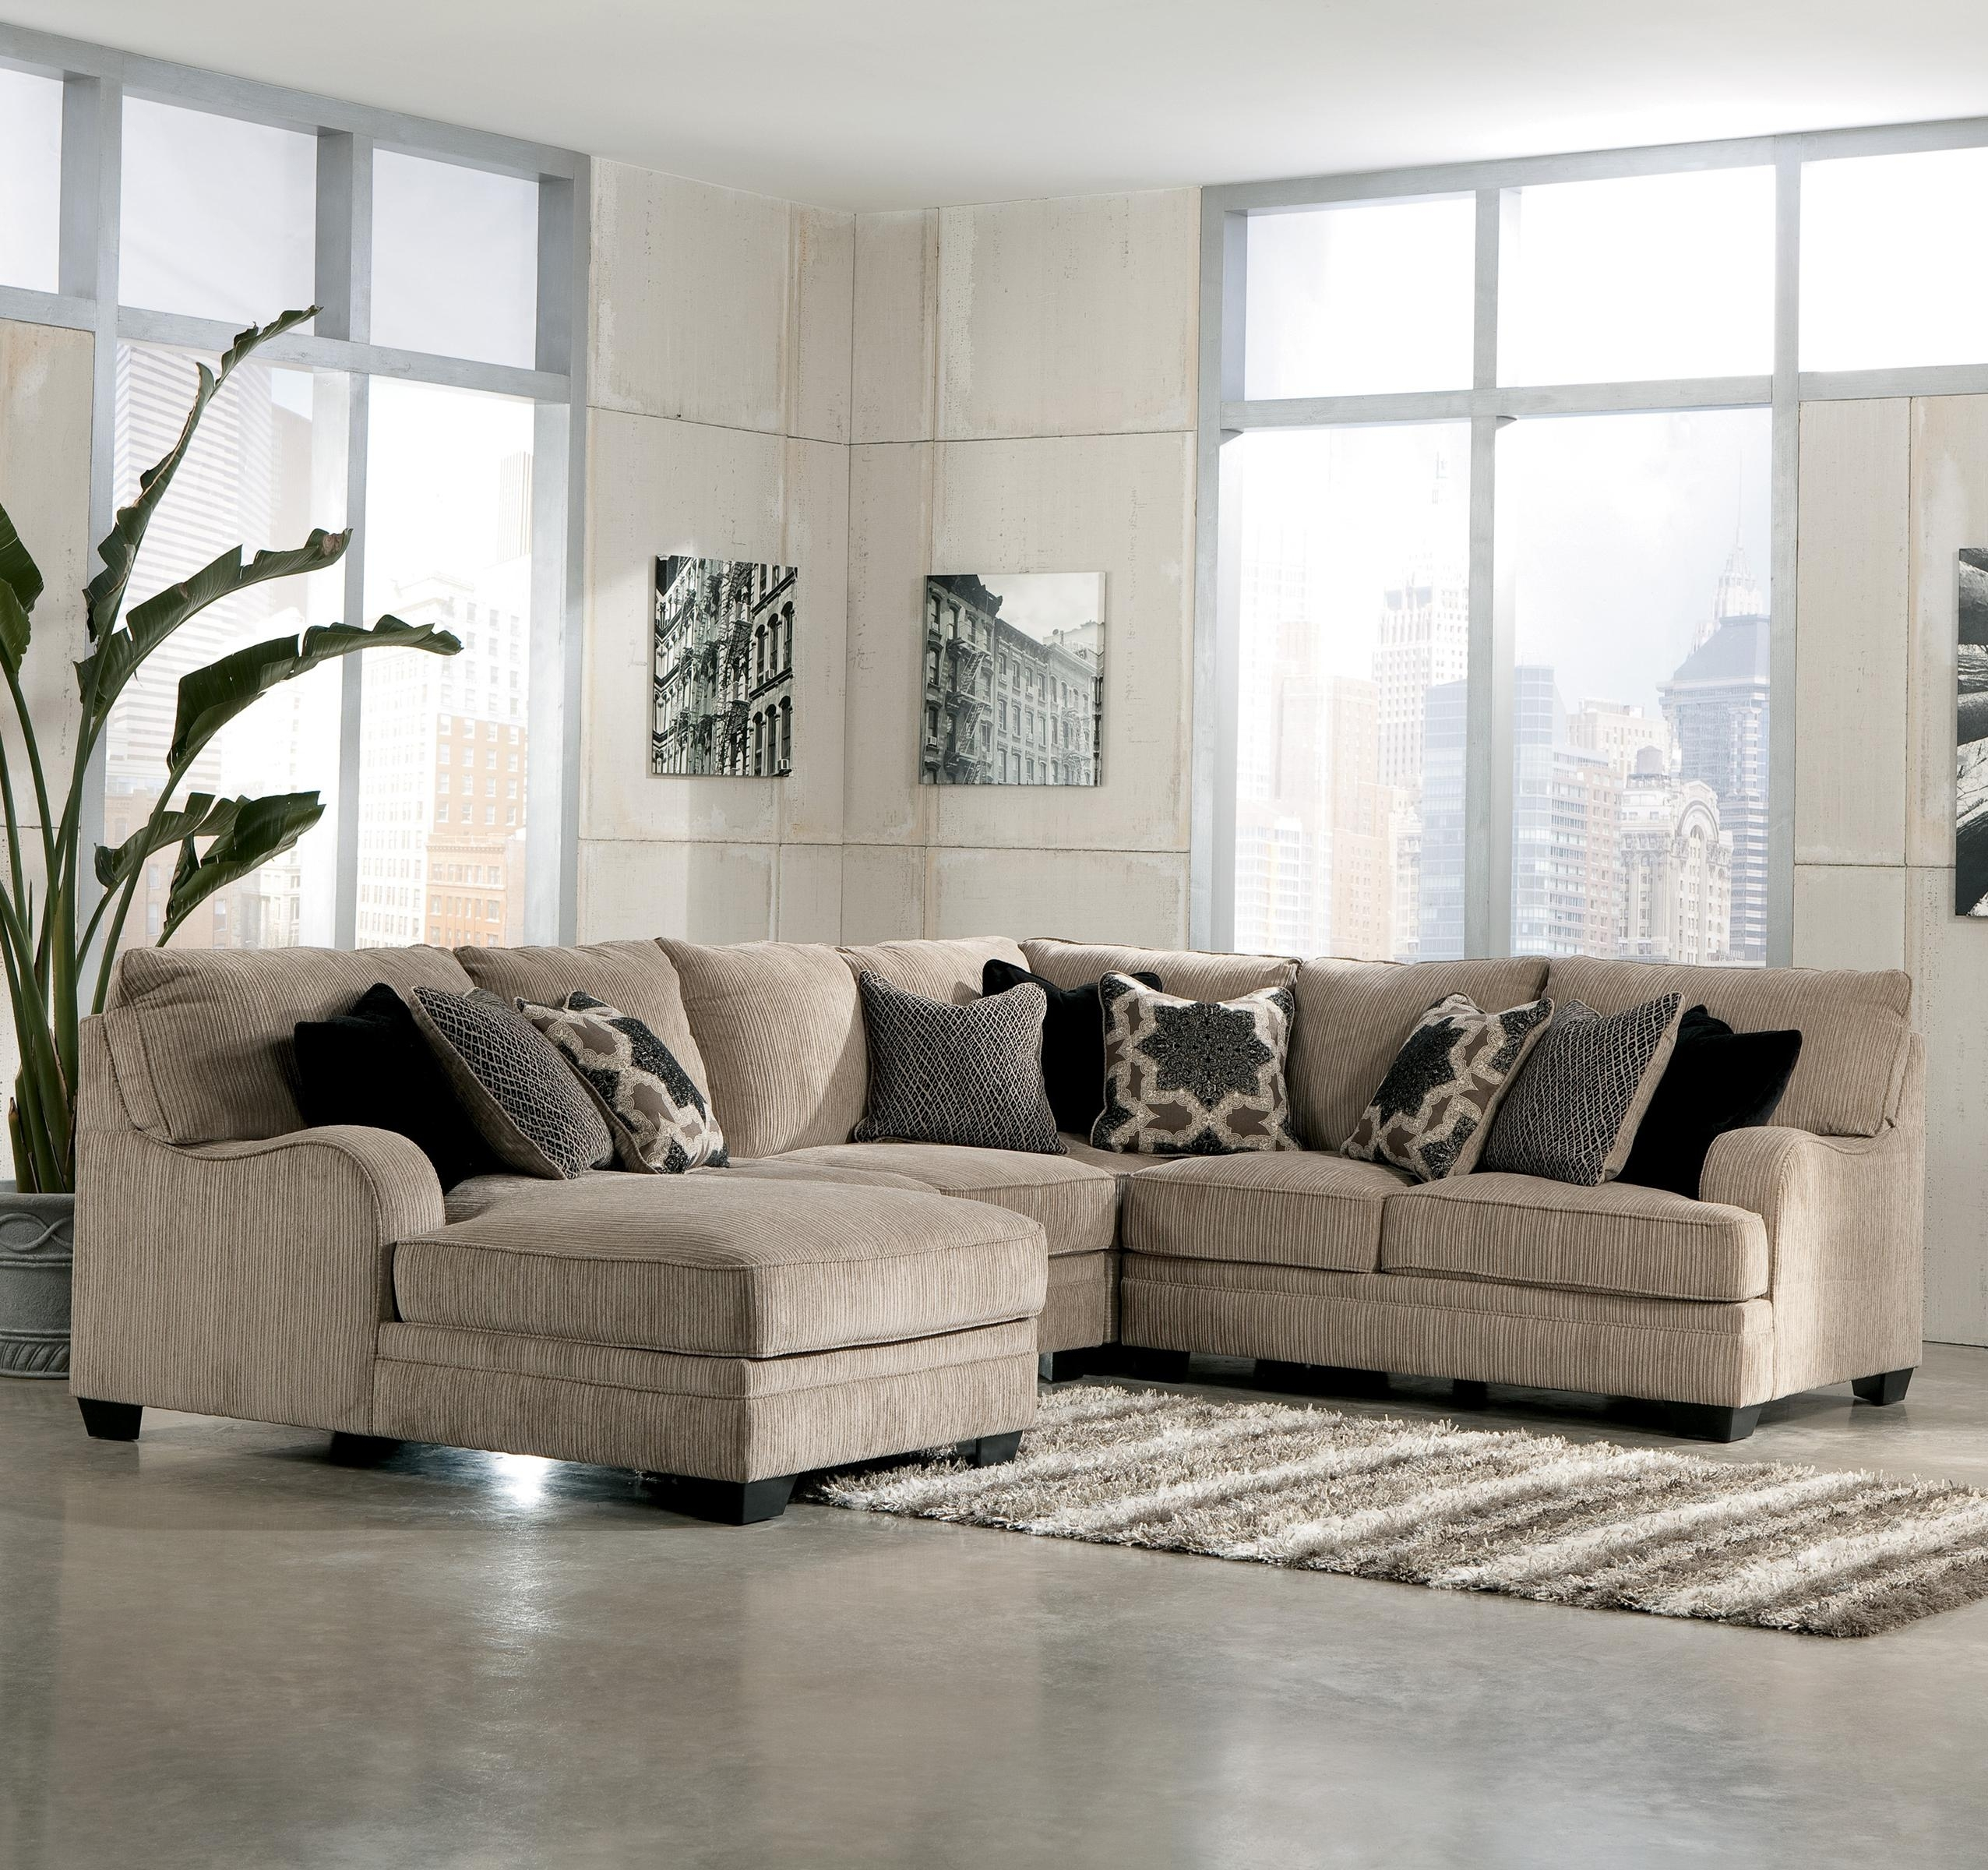 Ashleys Furniture Killeen Tx: 10 Collection Of Killeen Tx Sectional Sofas